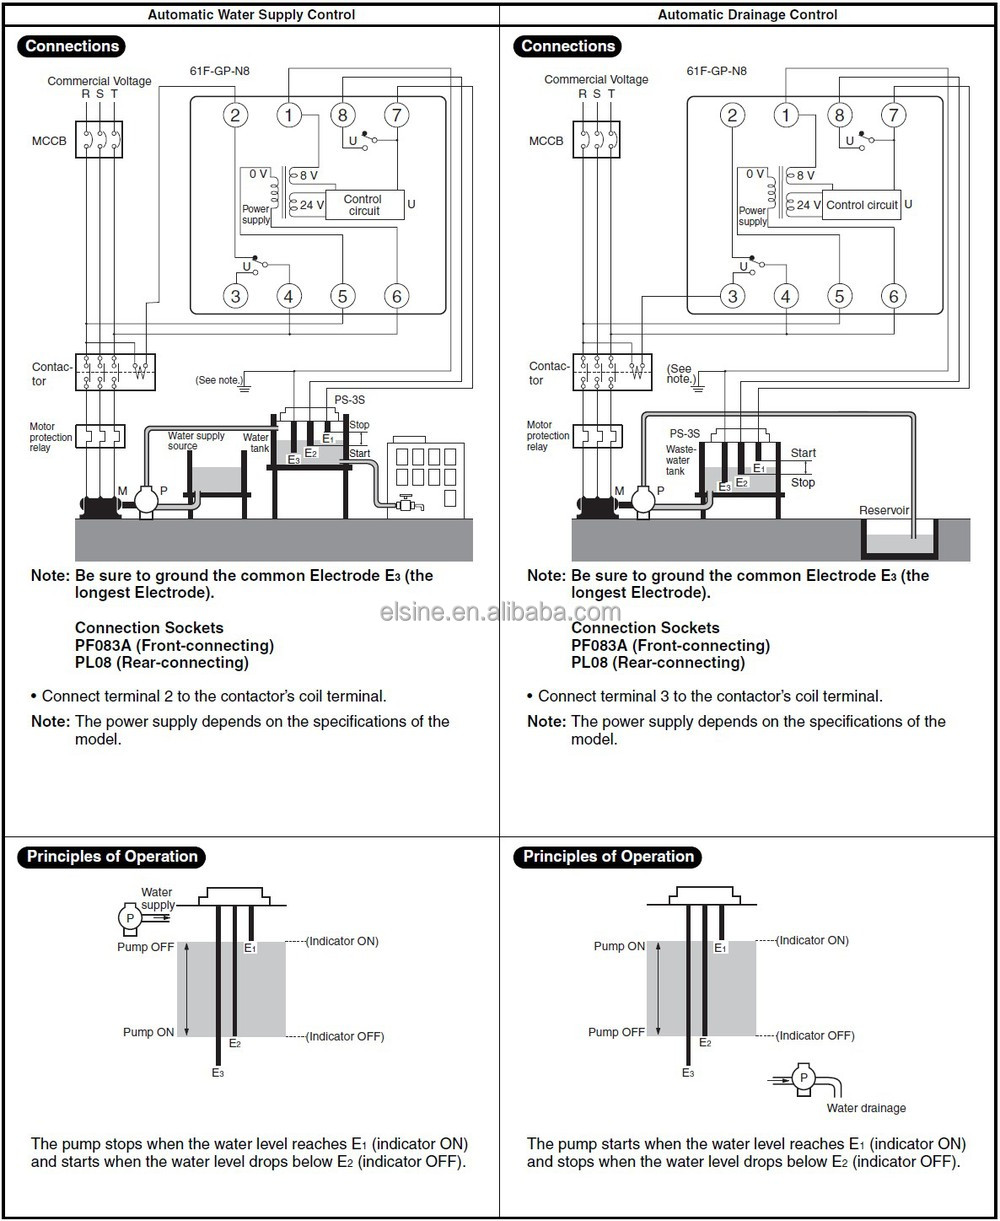 omron temperature controller wiring diagram hvac diagrams floatless level switch relay/water controller(61f-gp-n8), view ...